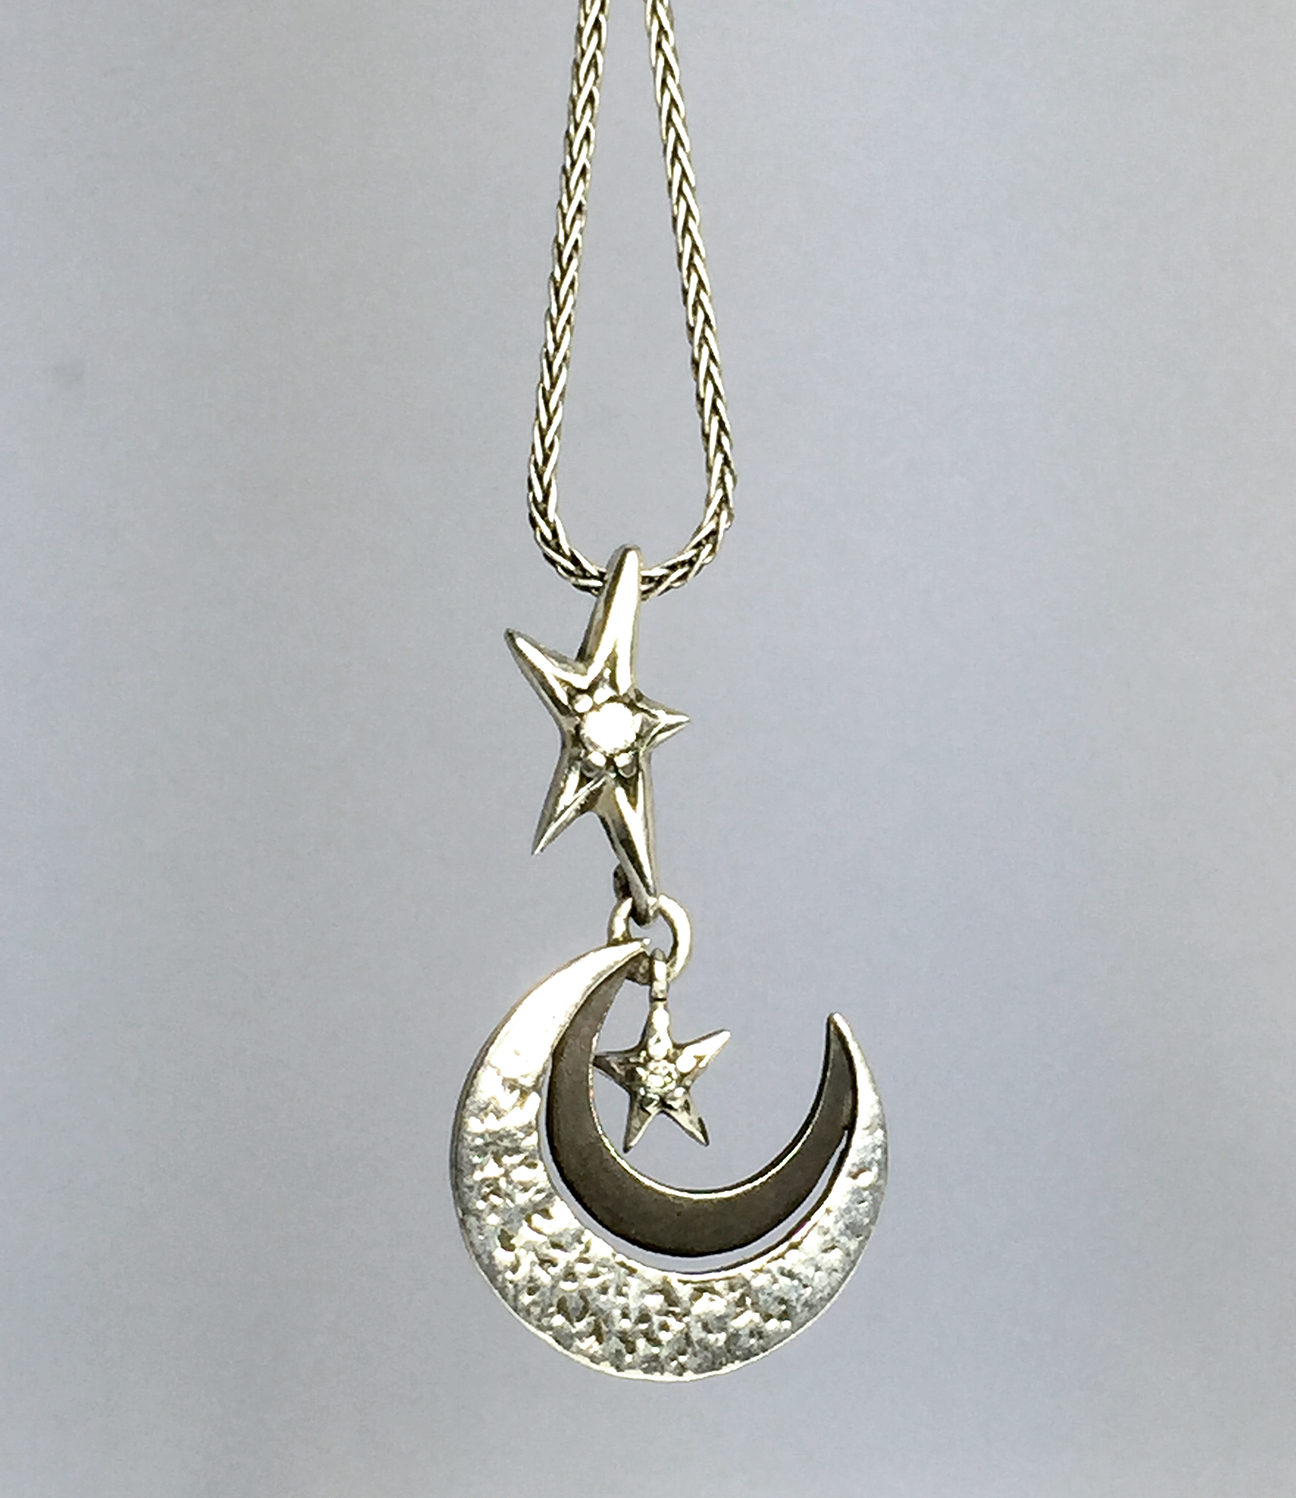 landing moon shop pendant crescent company necklace